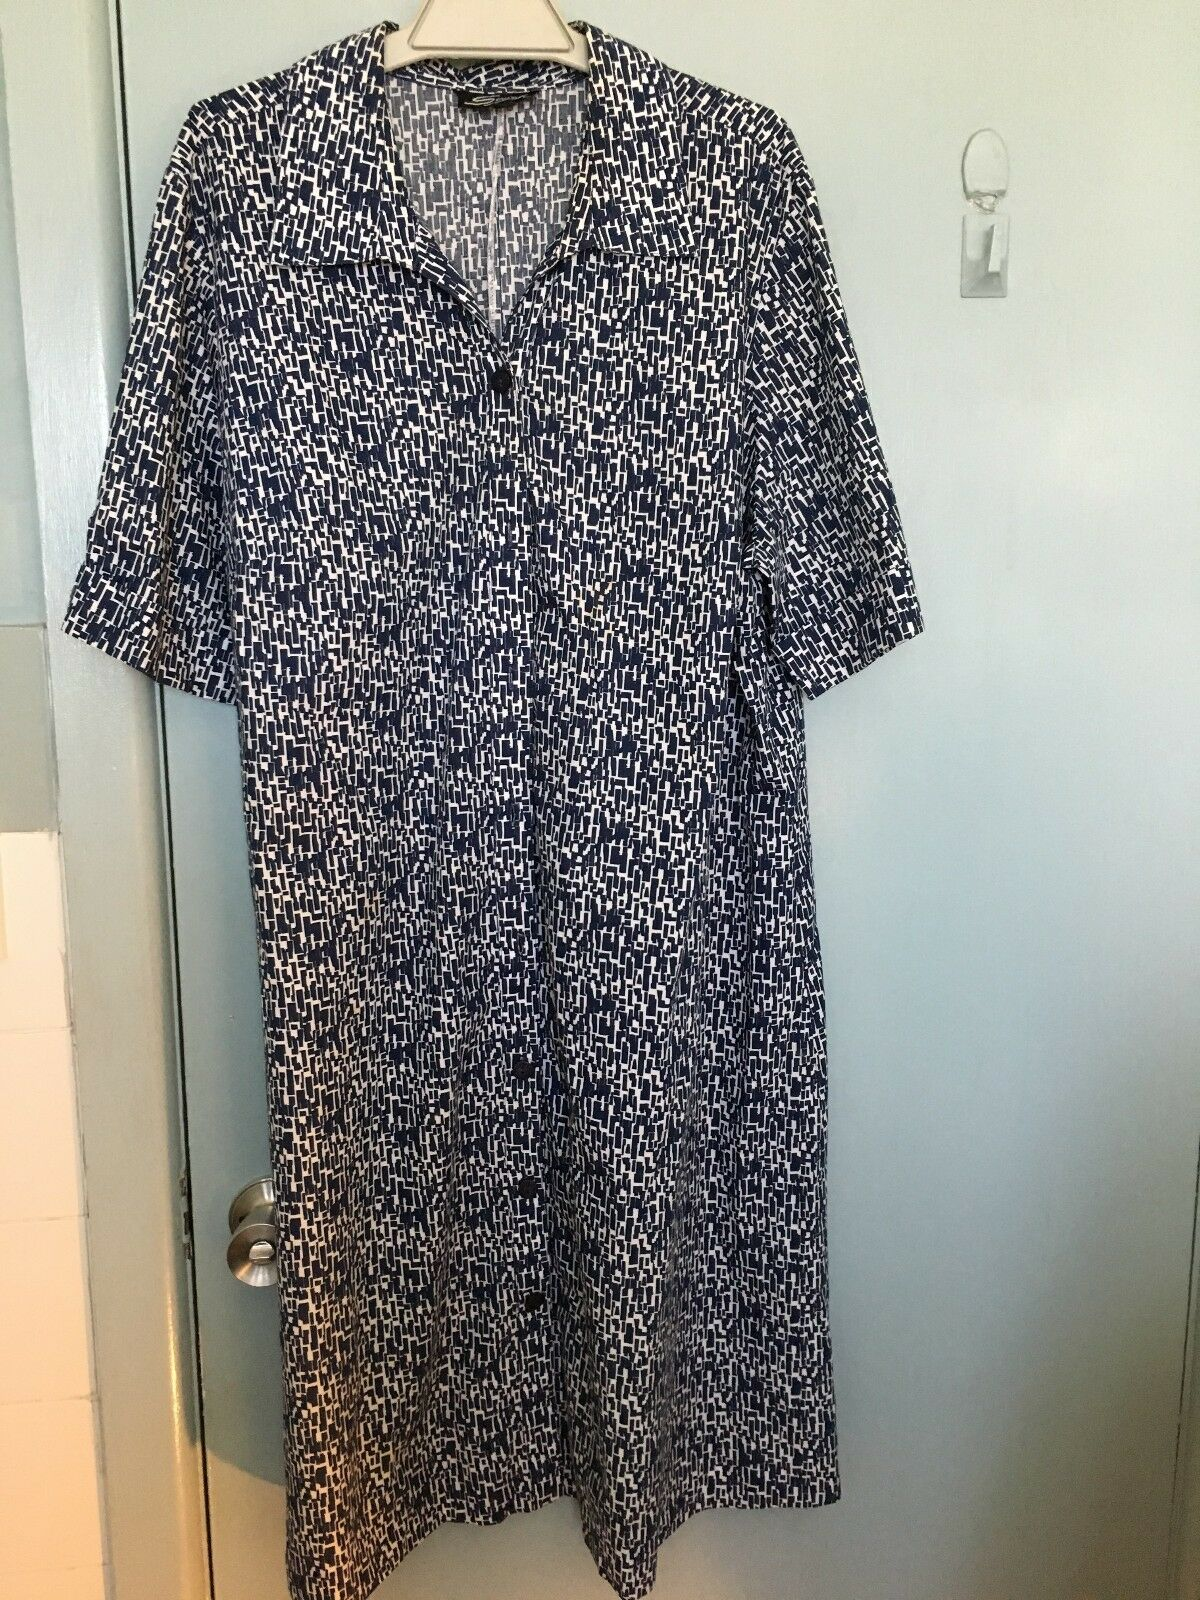 Swish navy and white dress in size 22